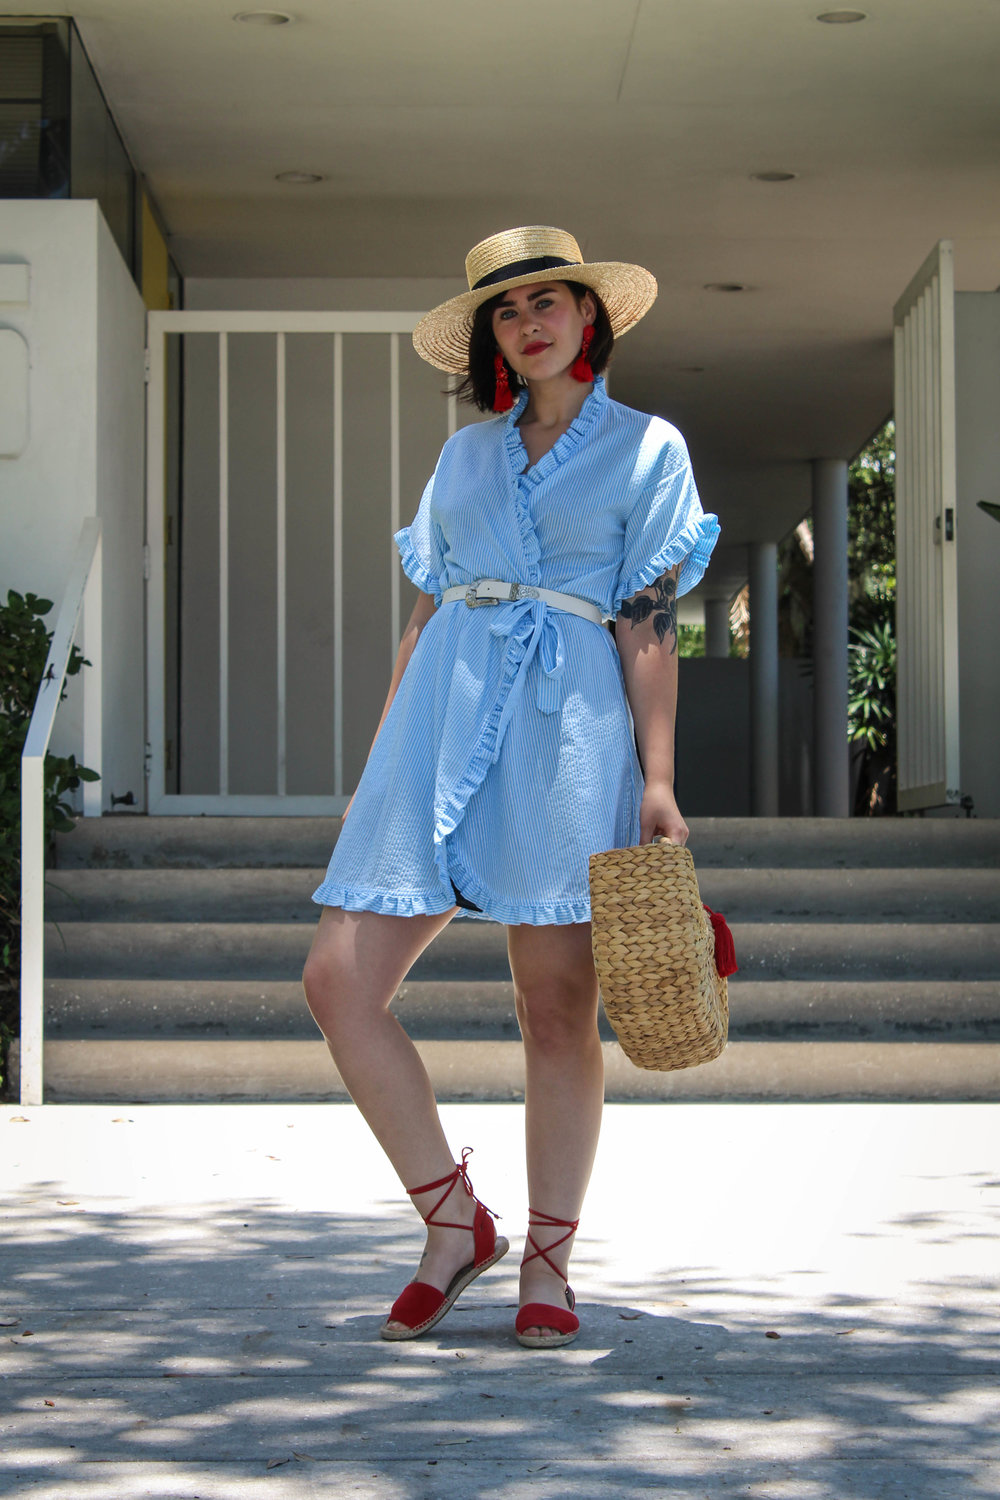 vacationdress-9.jpg